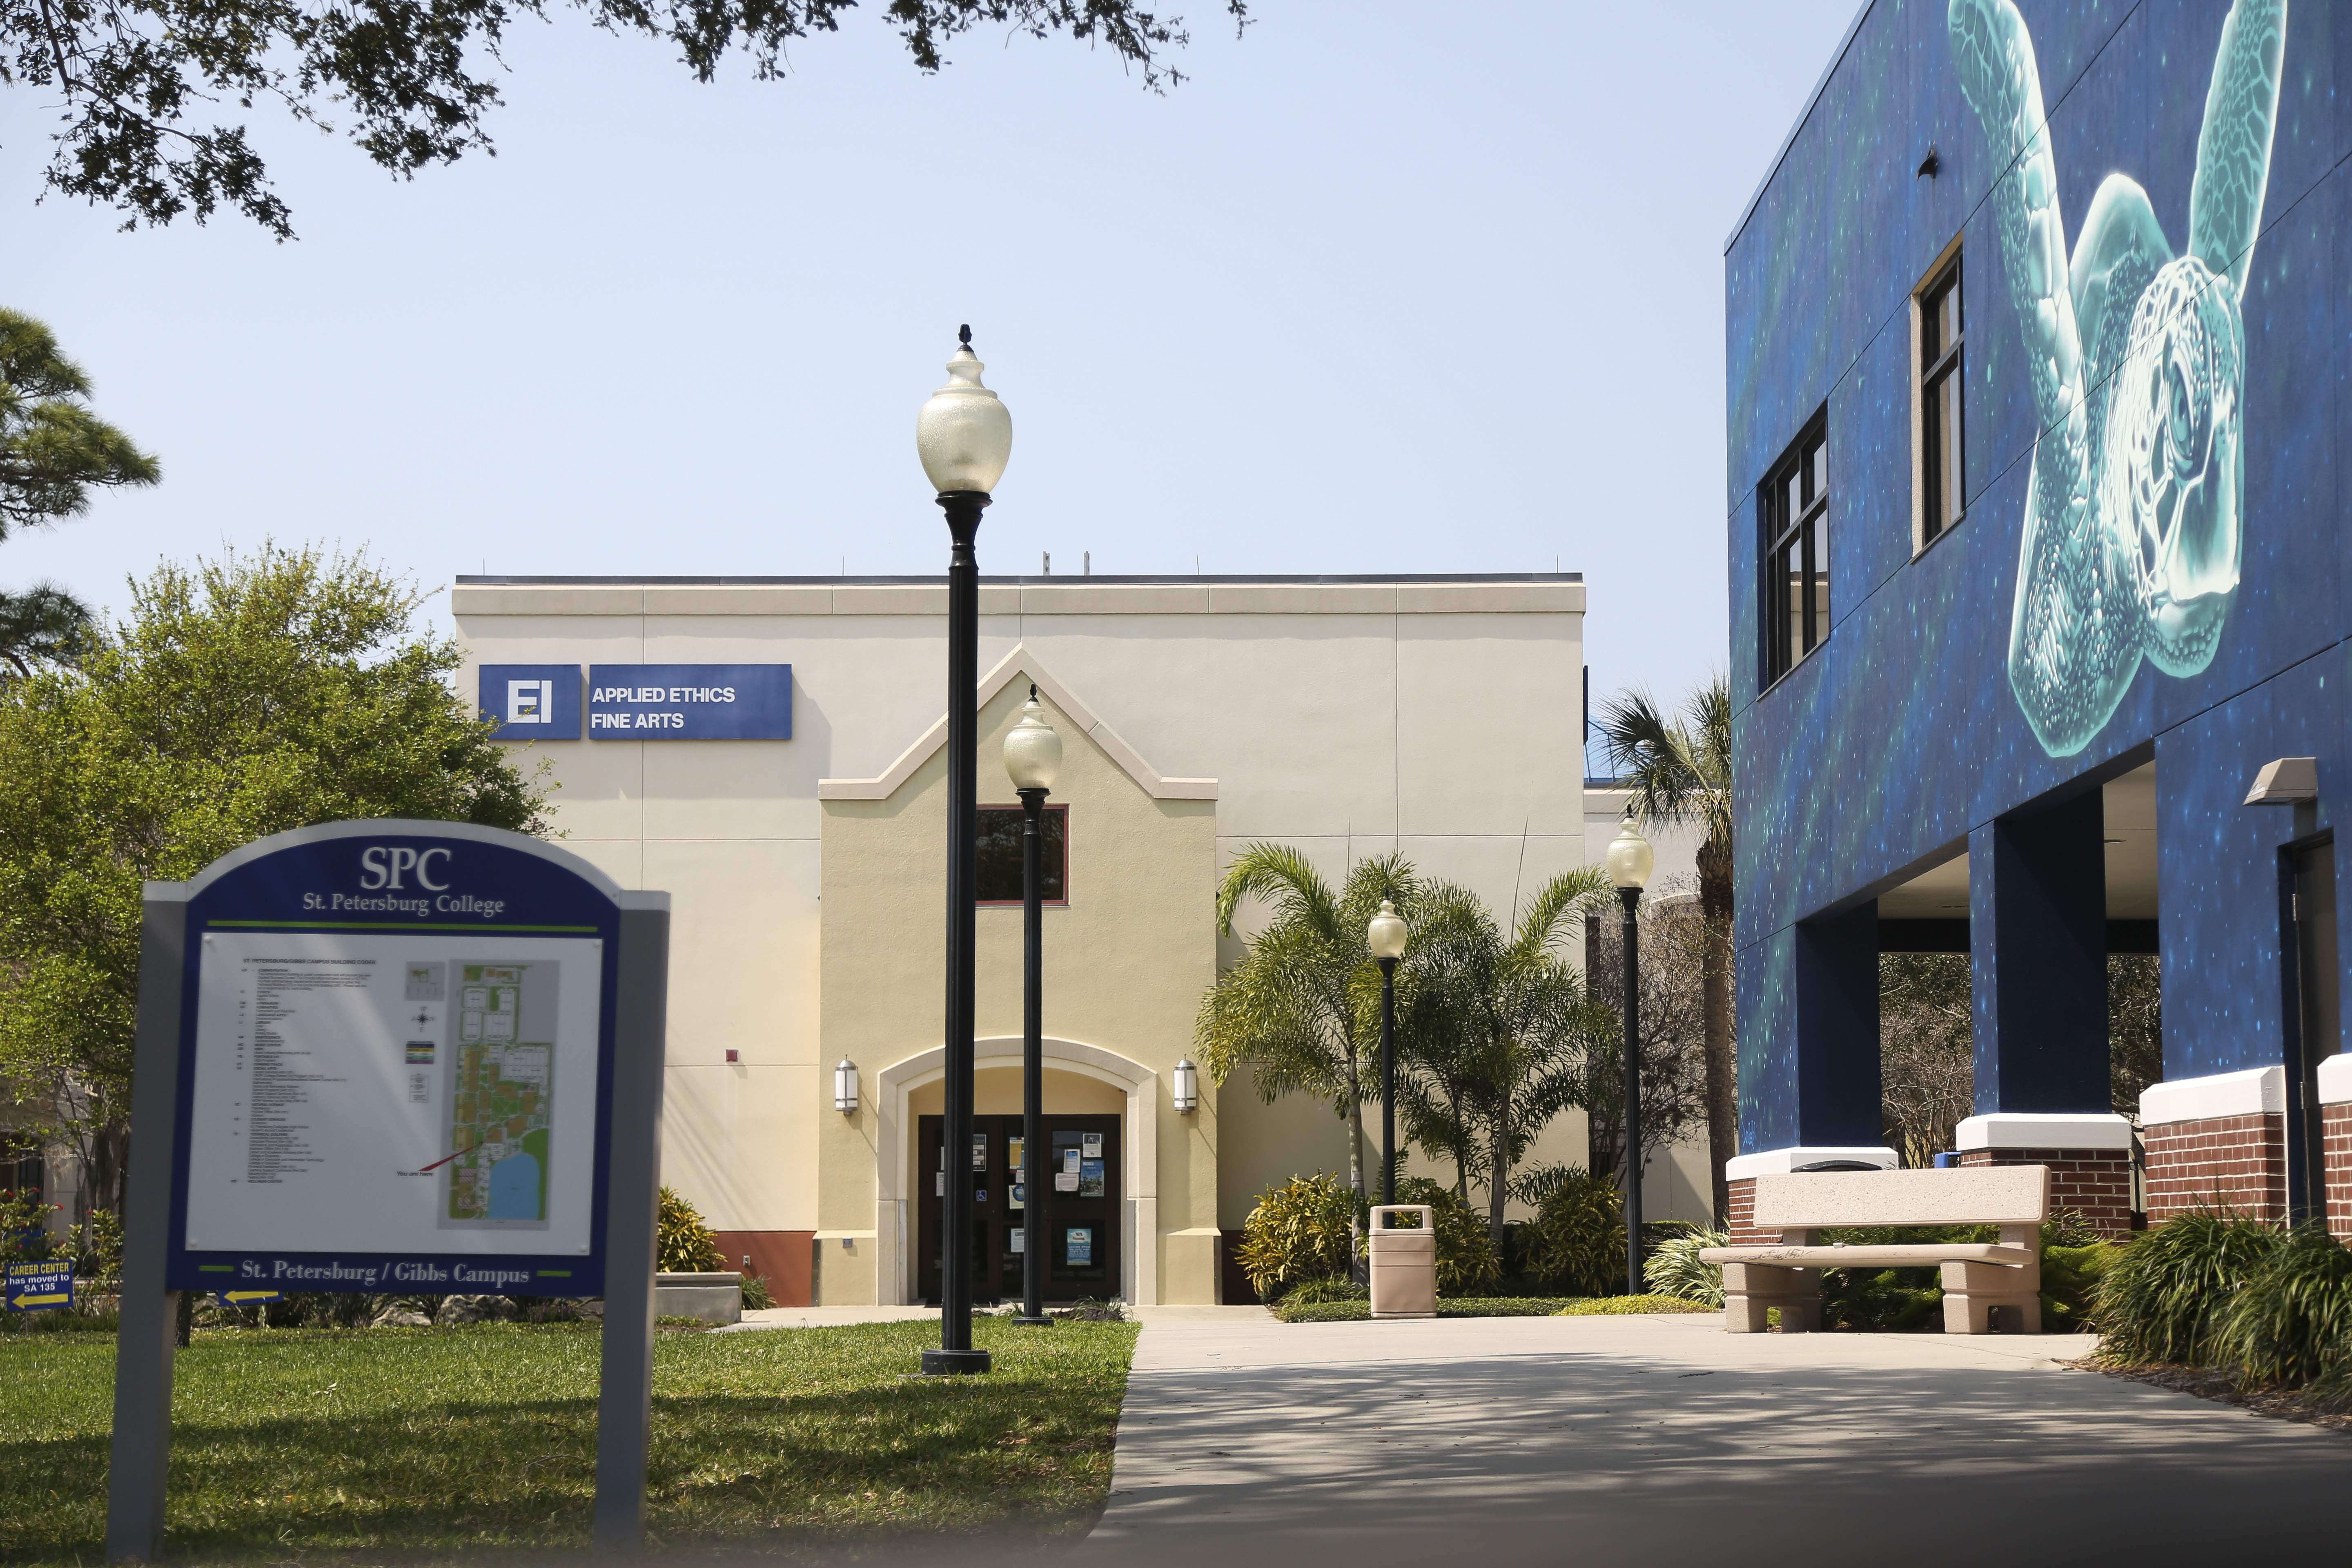 Pinellas education news: getting ready for fall classes at